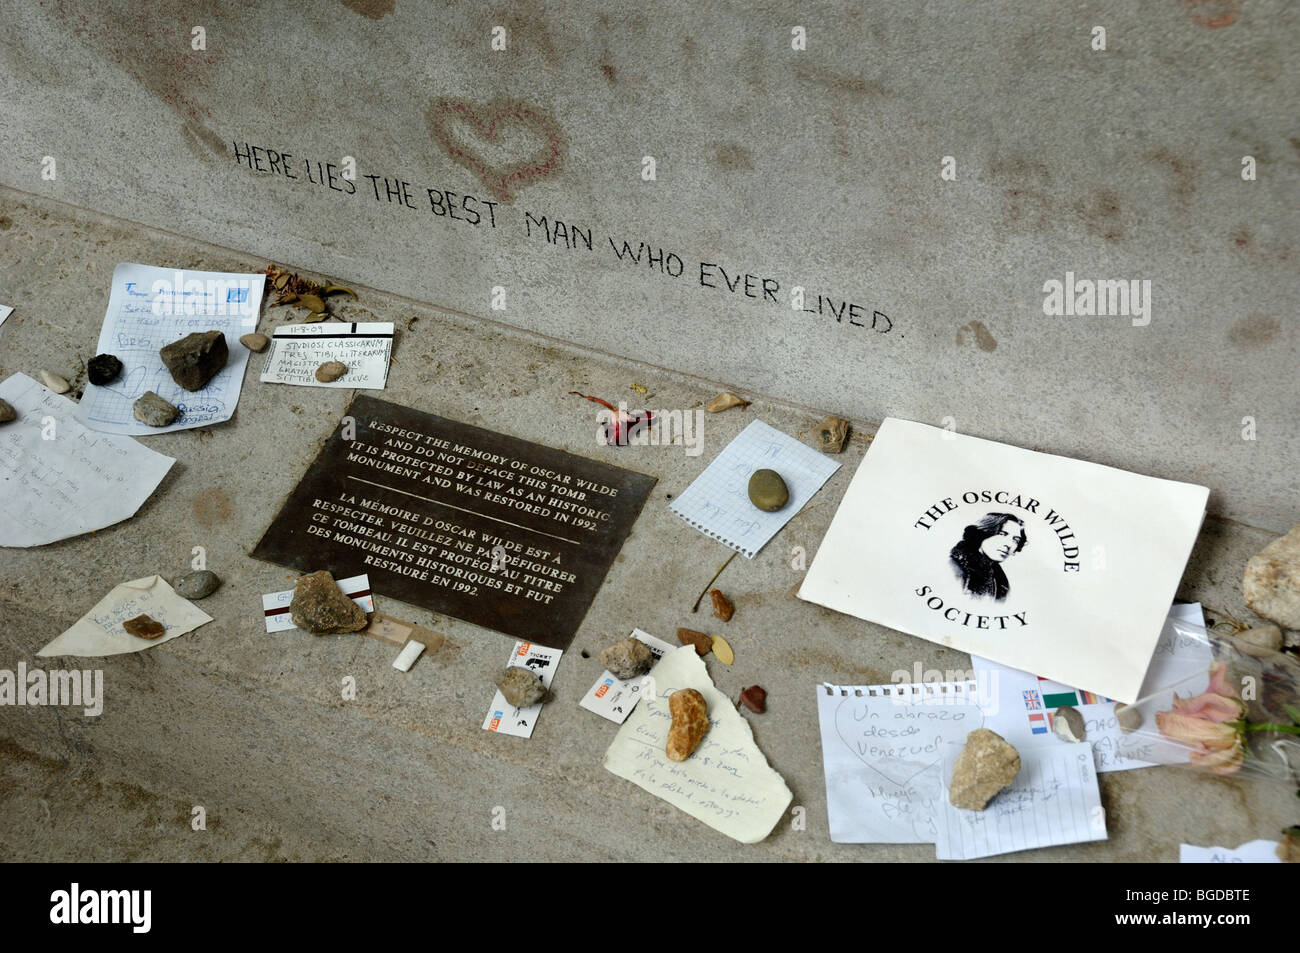 Souvenirs & Mementoes Left on the Oscar Wilde Tomb by Fans, Pere Lachaise Cemetery, Paris, France - Stock Image